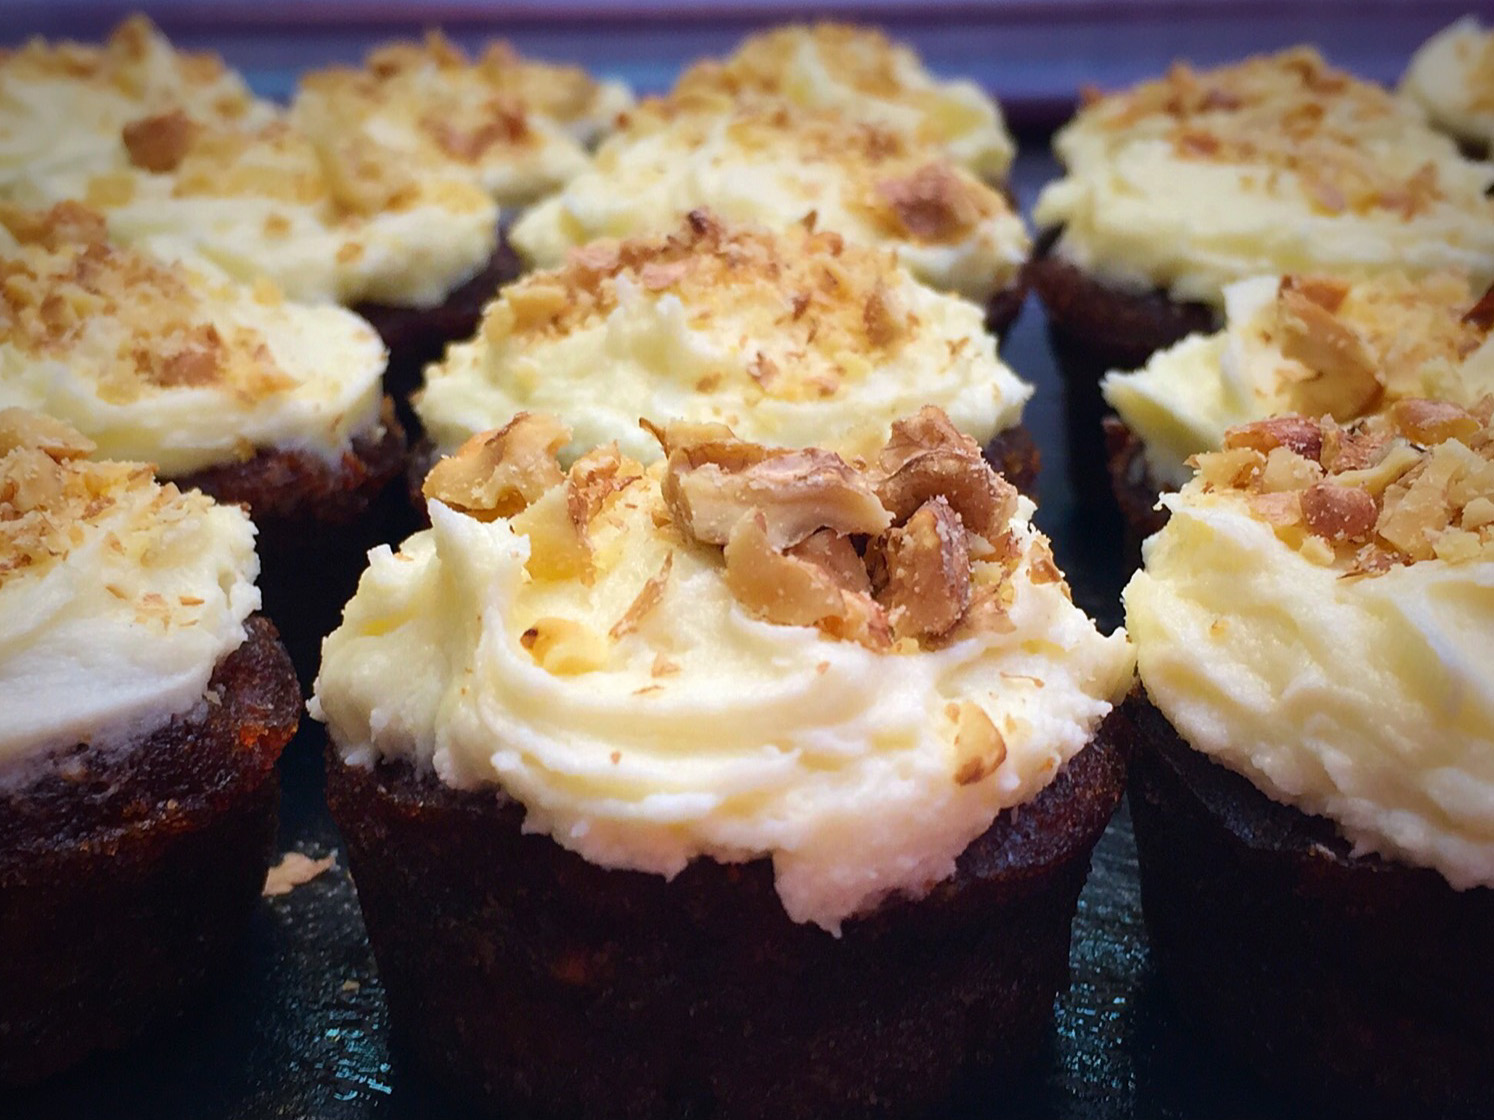 Baby carrot cakes